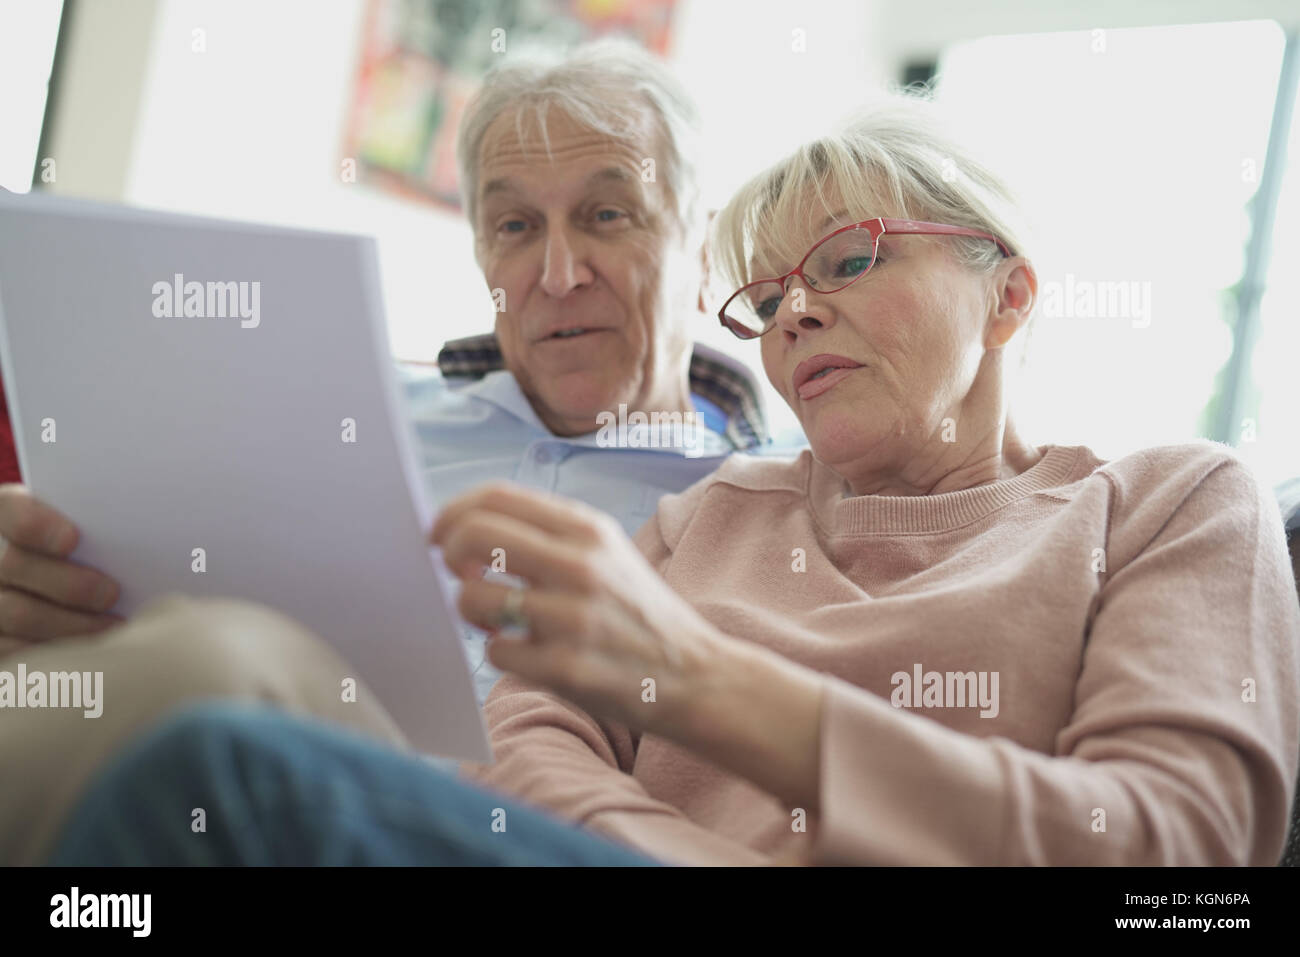 Senior couple in sofa reading official documents - Stock Image